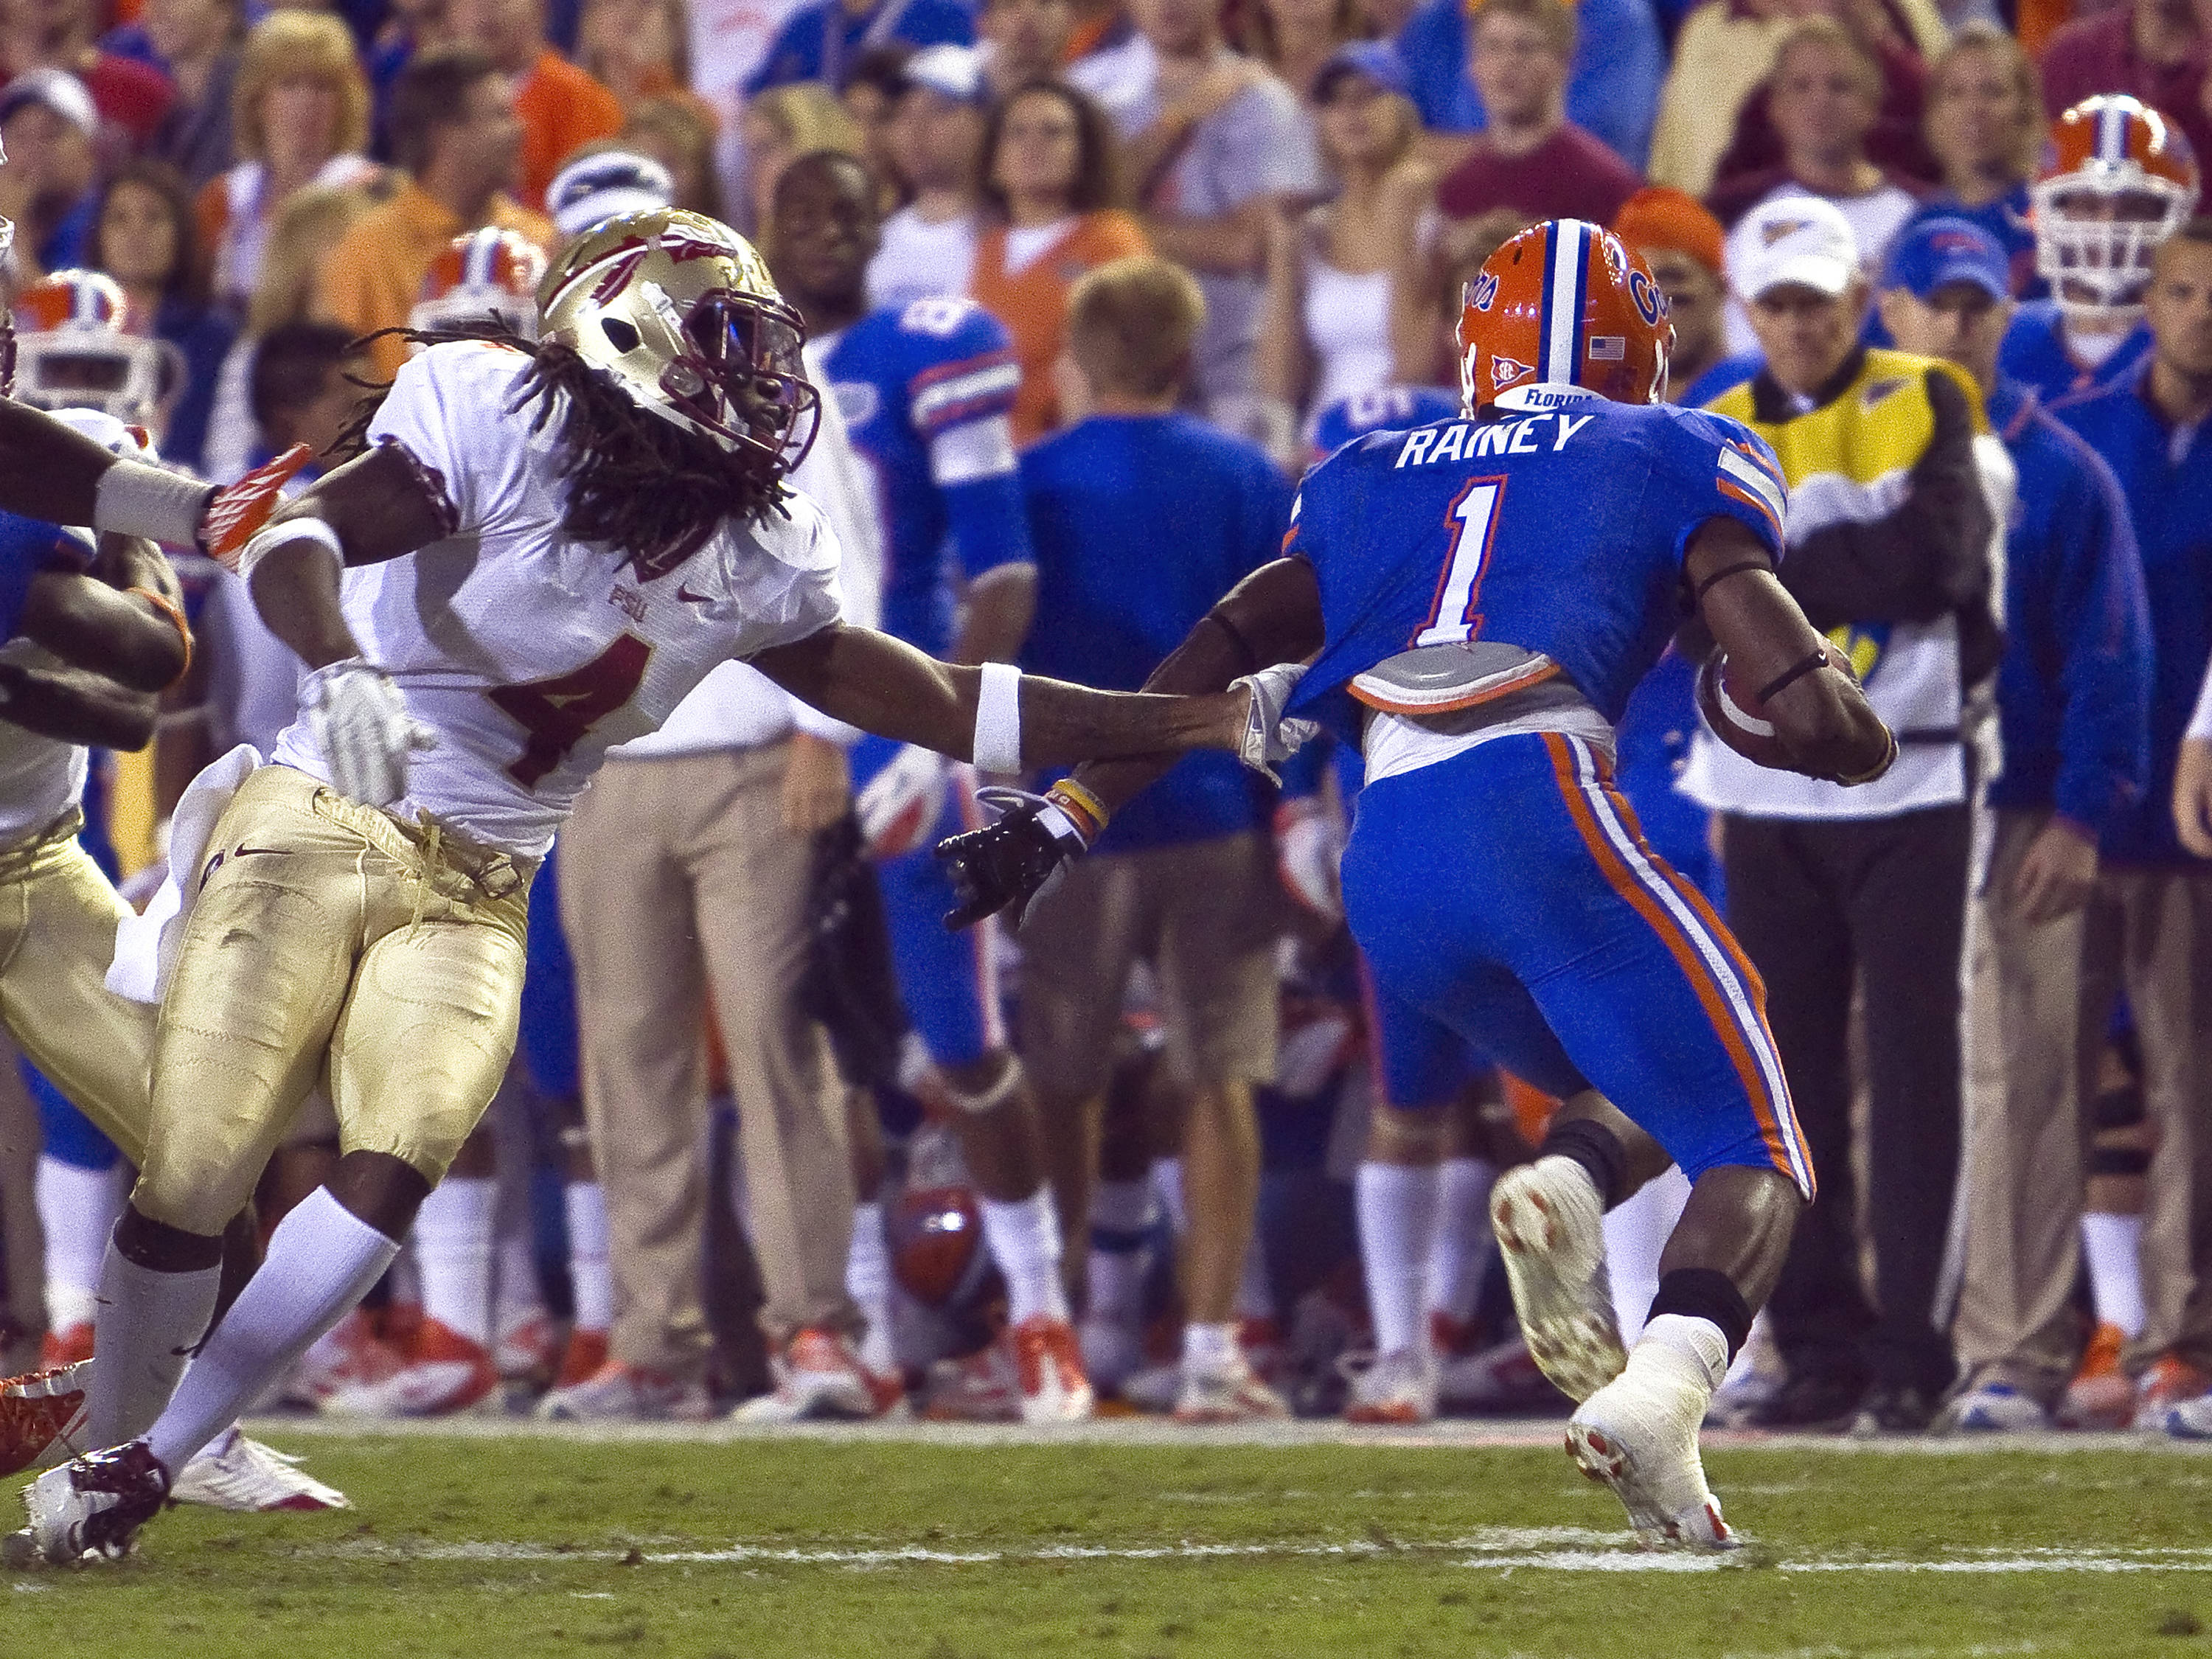 Terrance Parks (4) with a tackle, FSU vs Florida, 11/26/2011